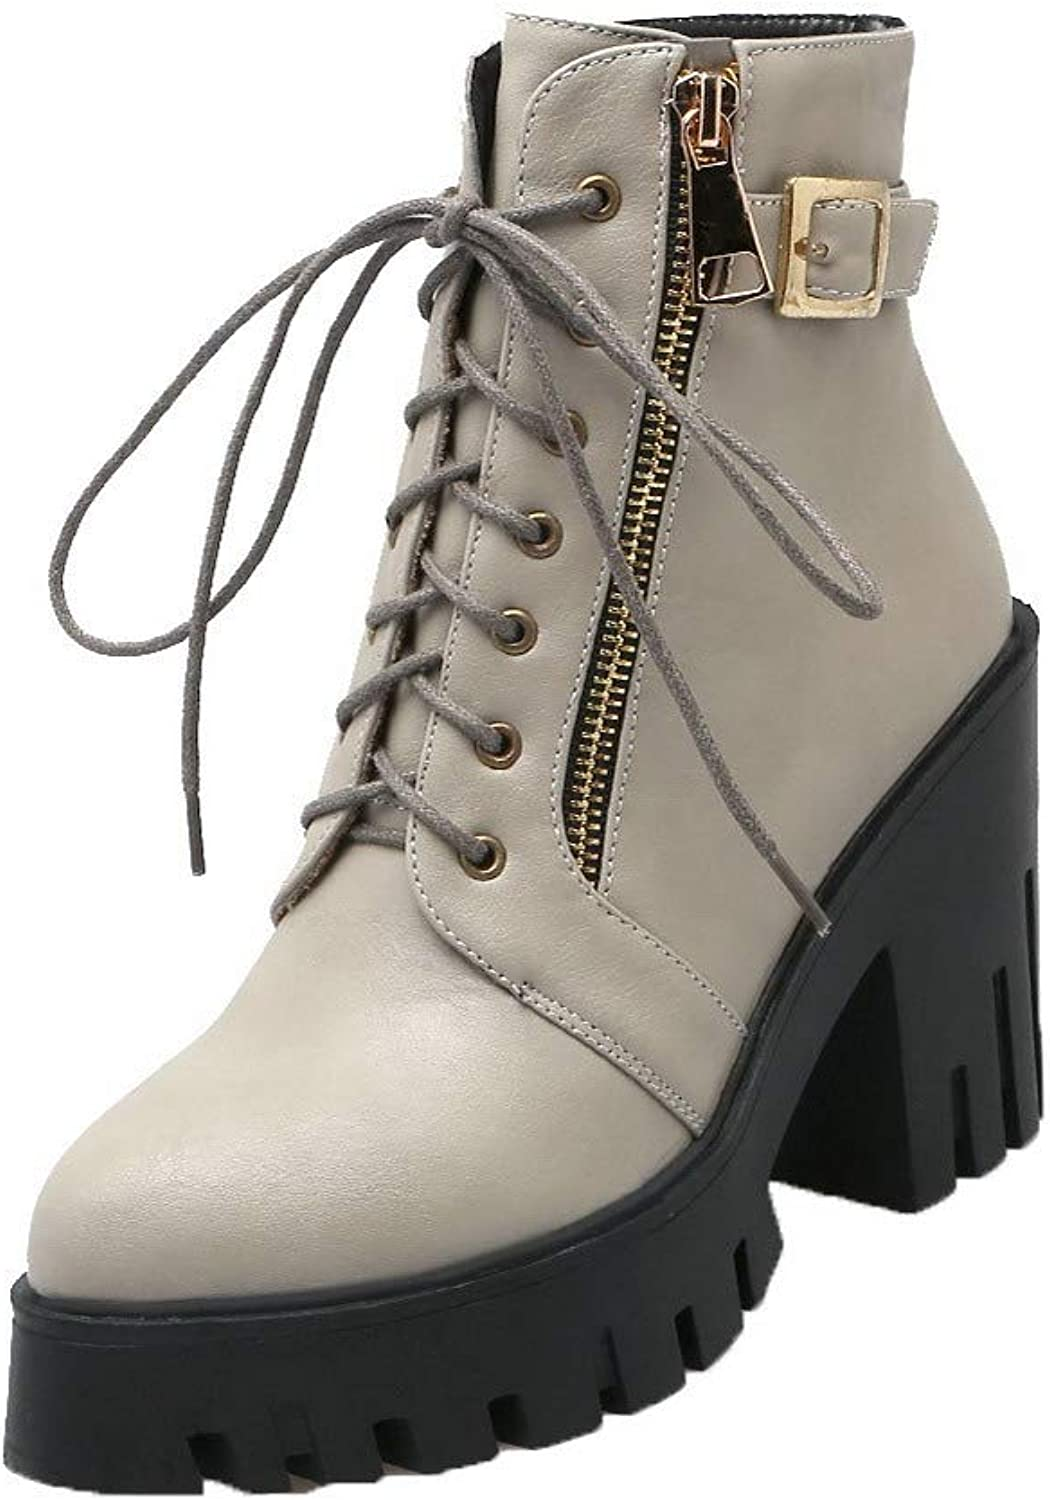 WeenFashion Women's Low-Top Solid Zipper Closed-Toe High-Heels Boots, AMGXY111952